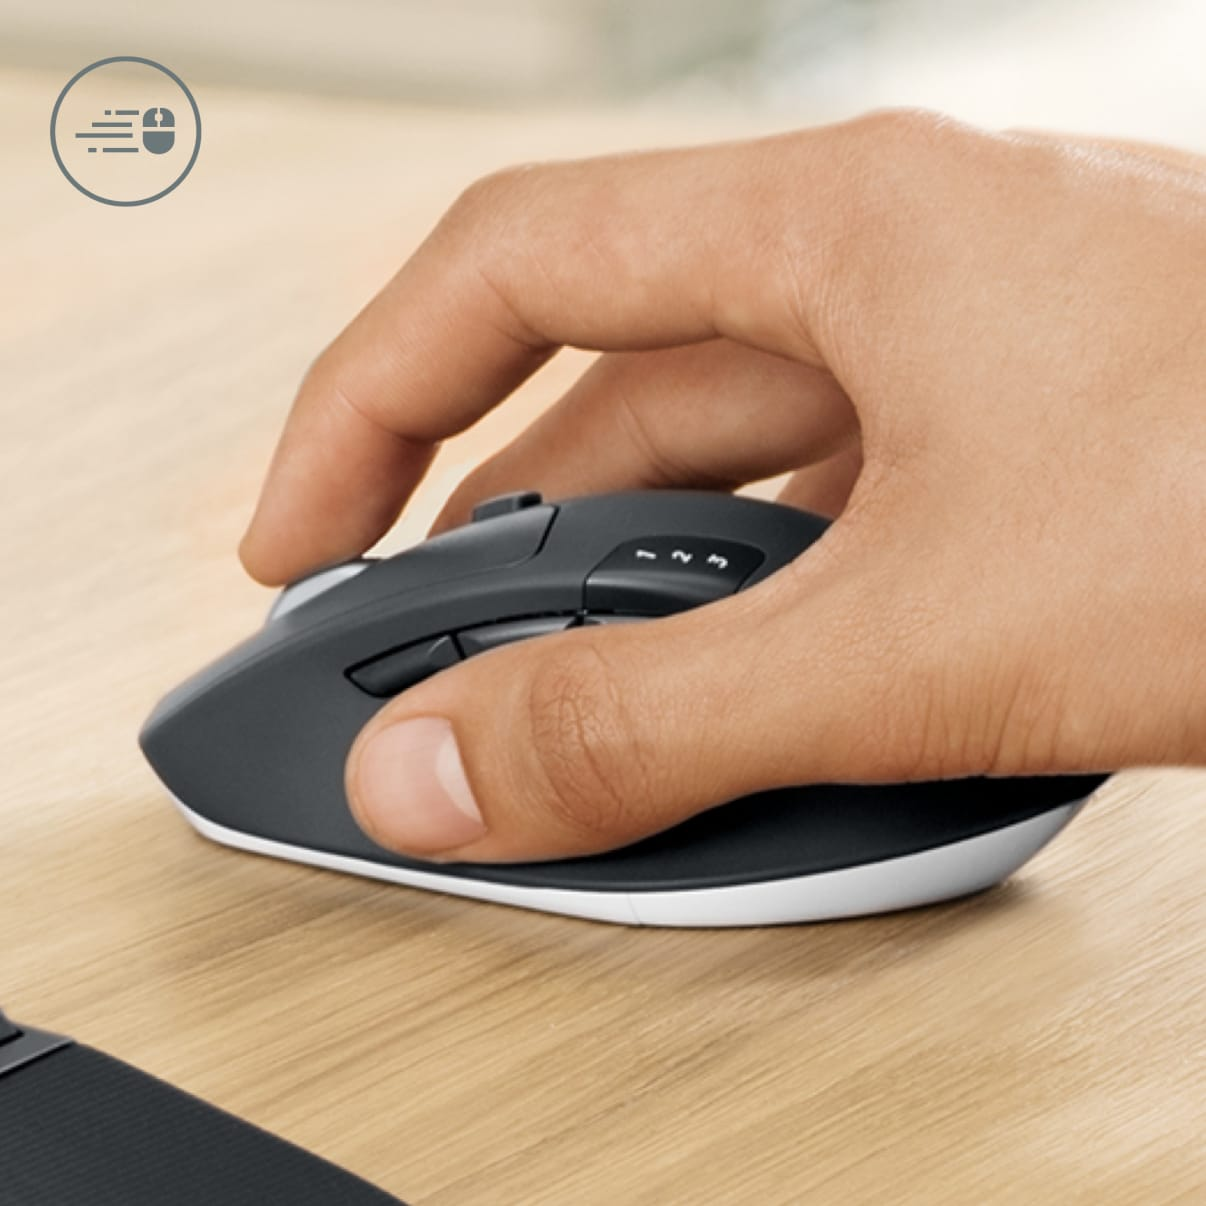 ENHANCED PRODUCTIVITY BY MOUSE